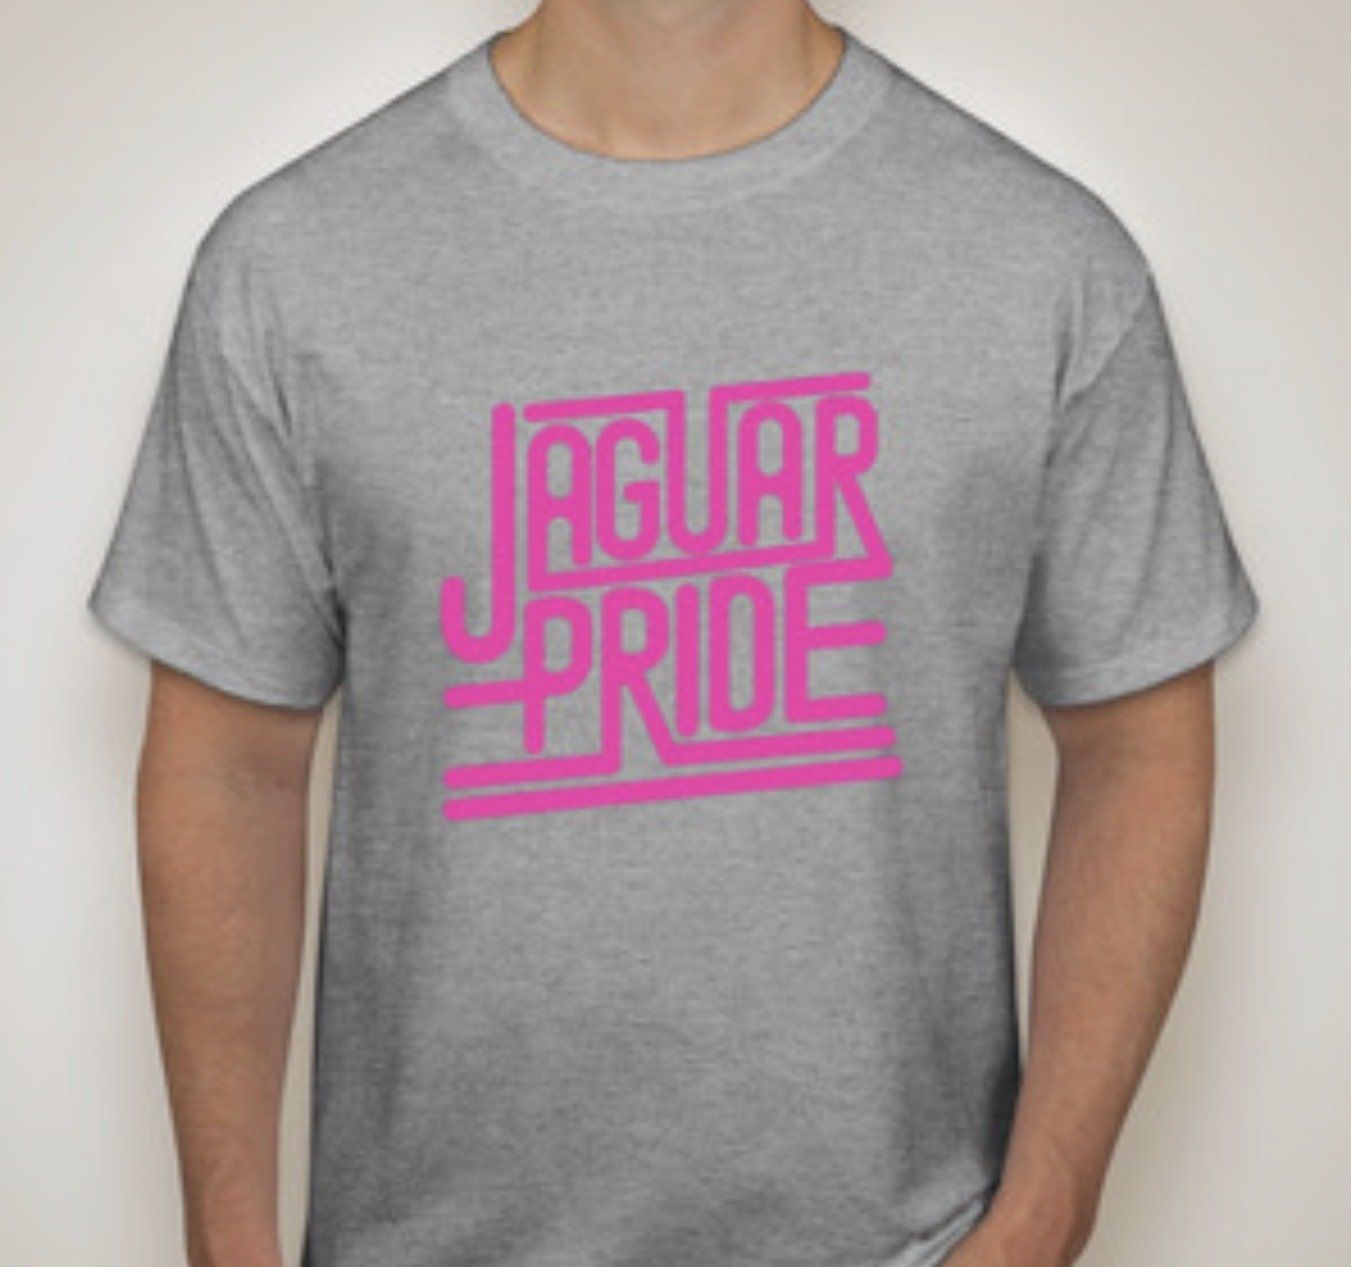 JAGUAR PRIDE Next Level SHORT sleeved T-shirt--NEON PINK IMPRINT